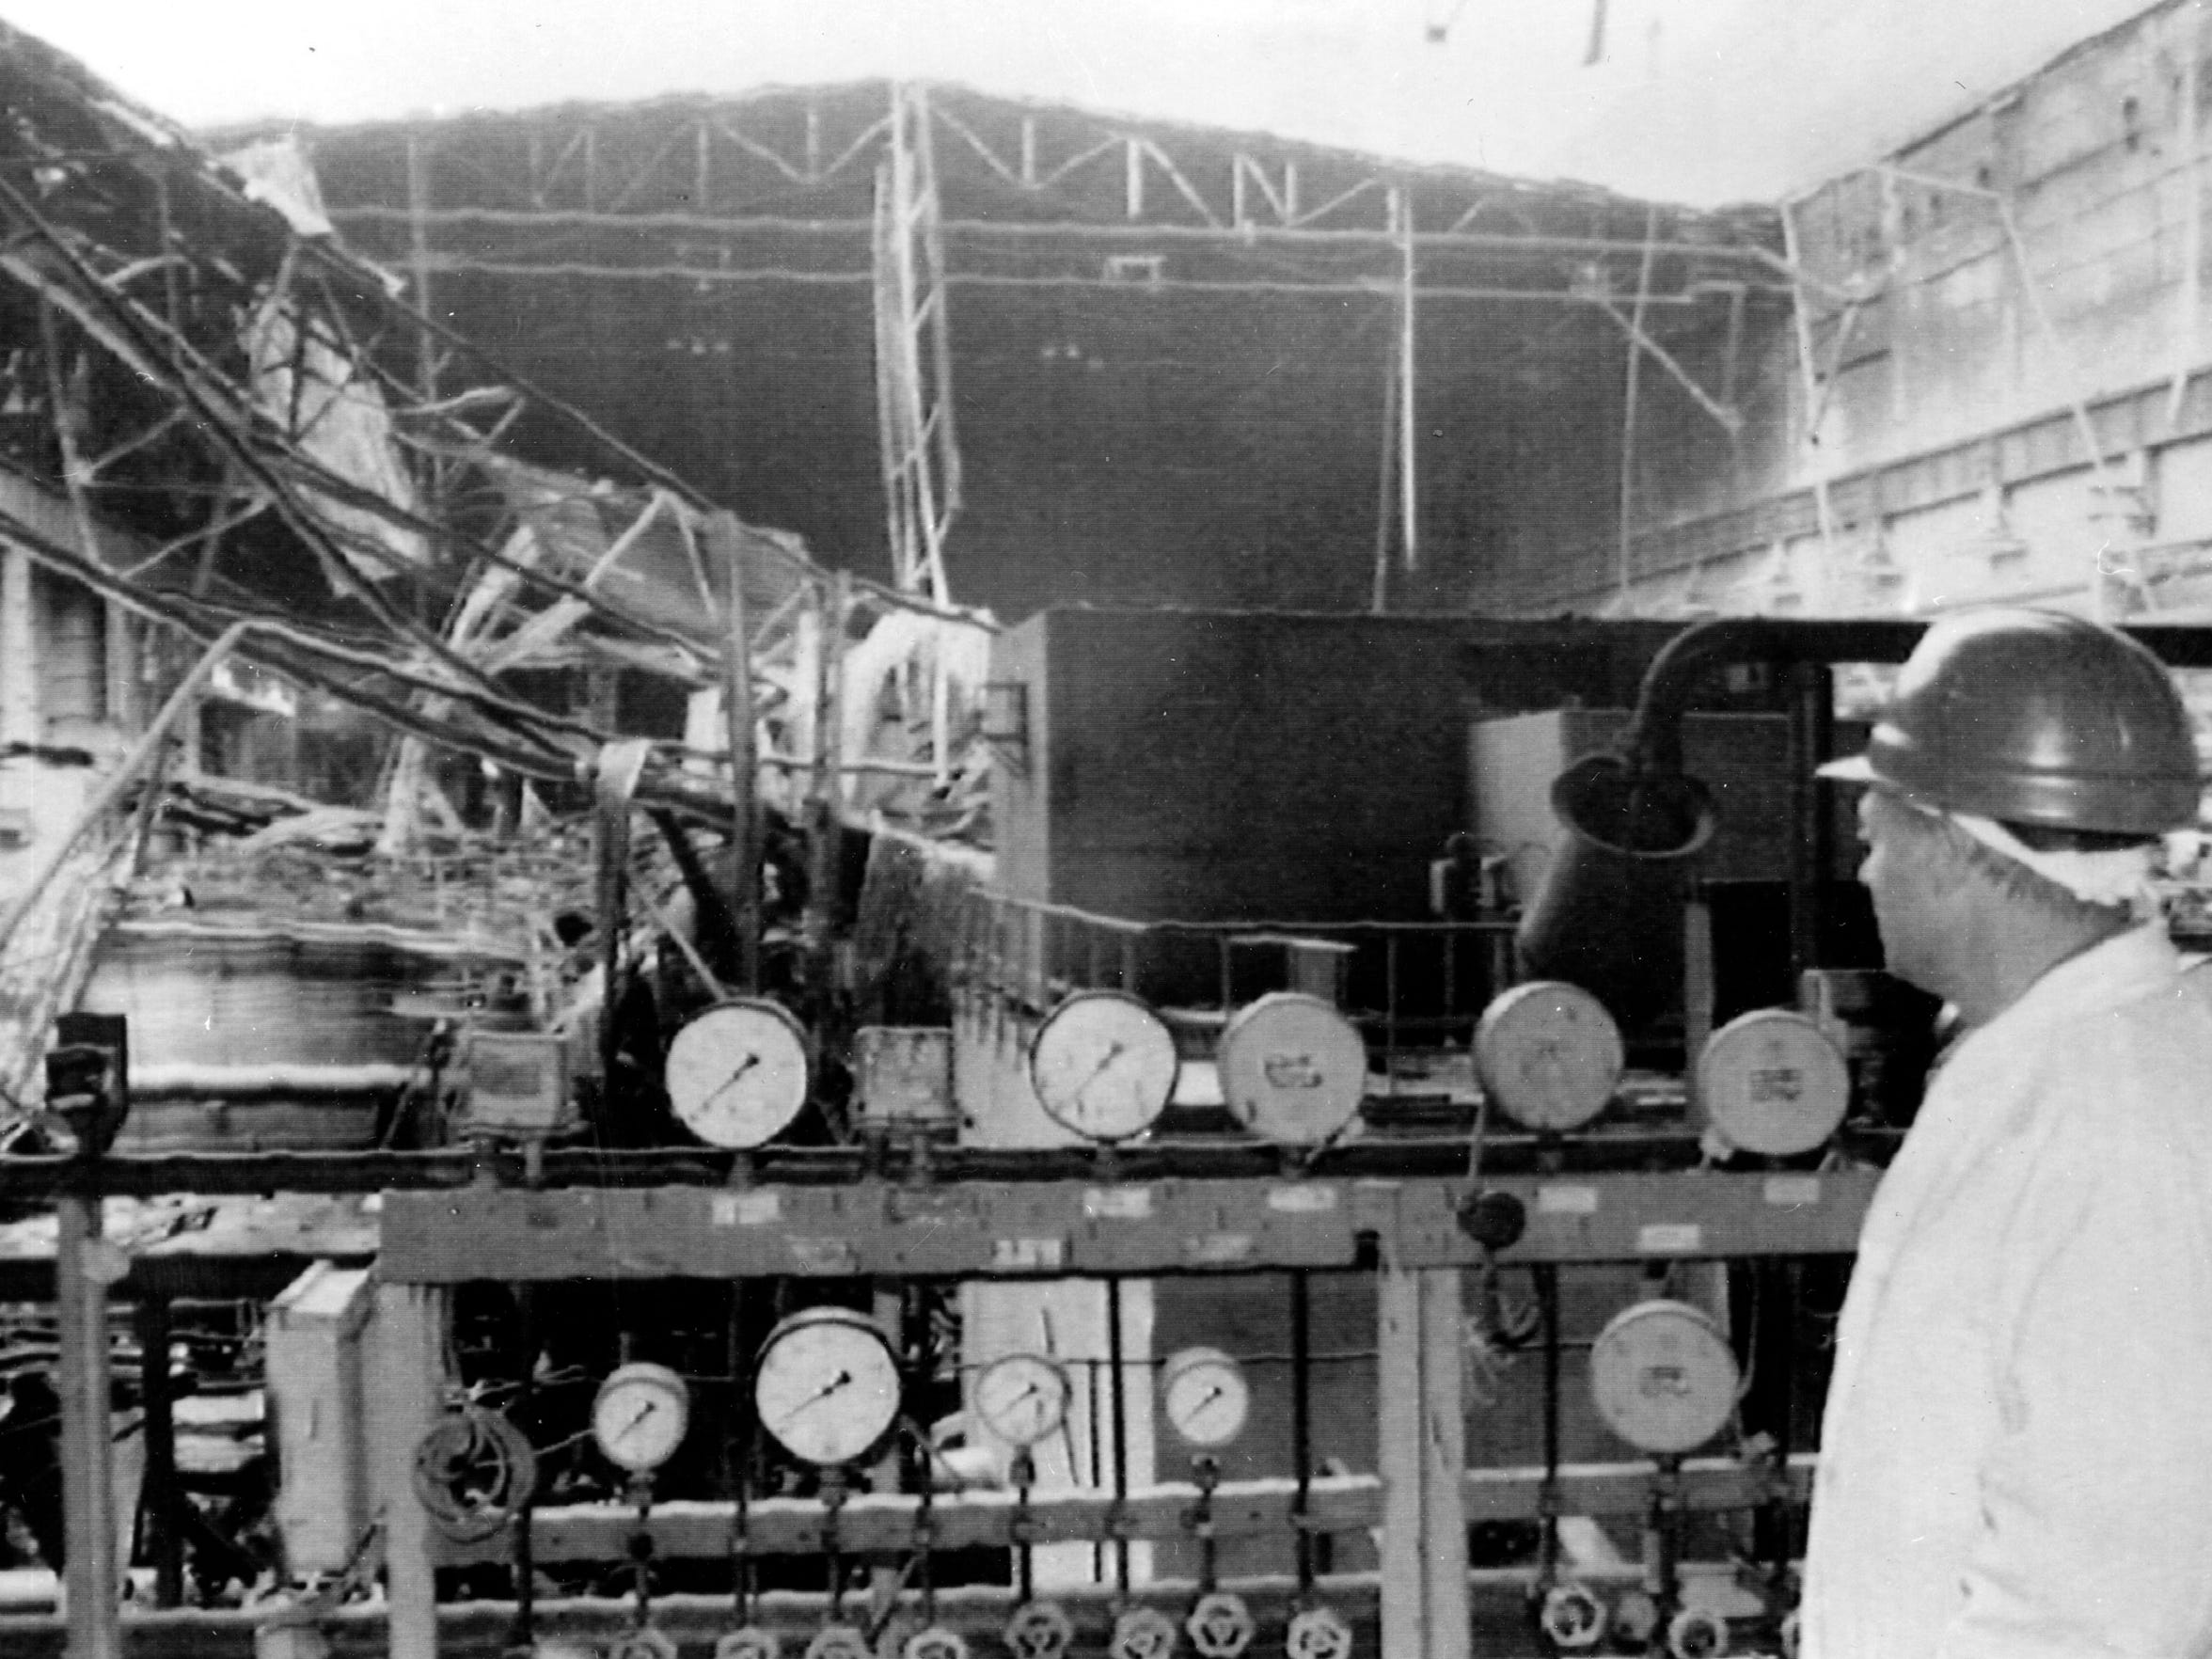 An engineer inspects the damage of the machine room at reactor two of the atomic power plant in Chernobyl, Russia, on October 13, 1986.